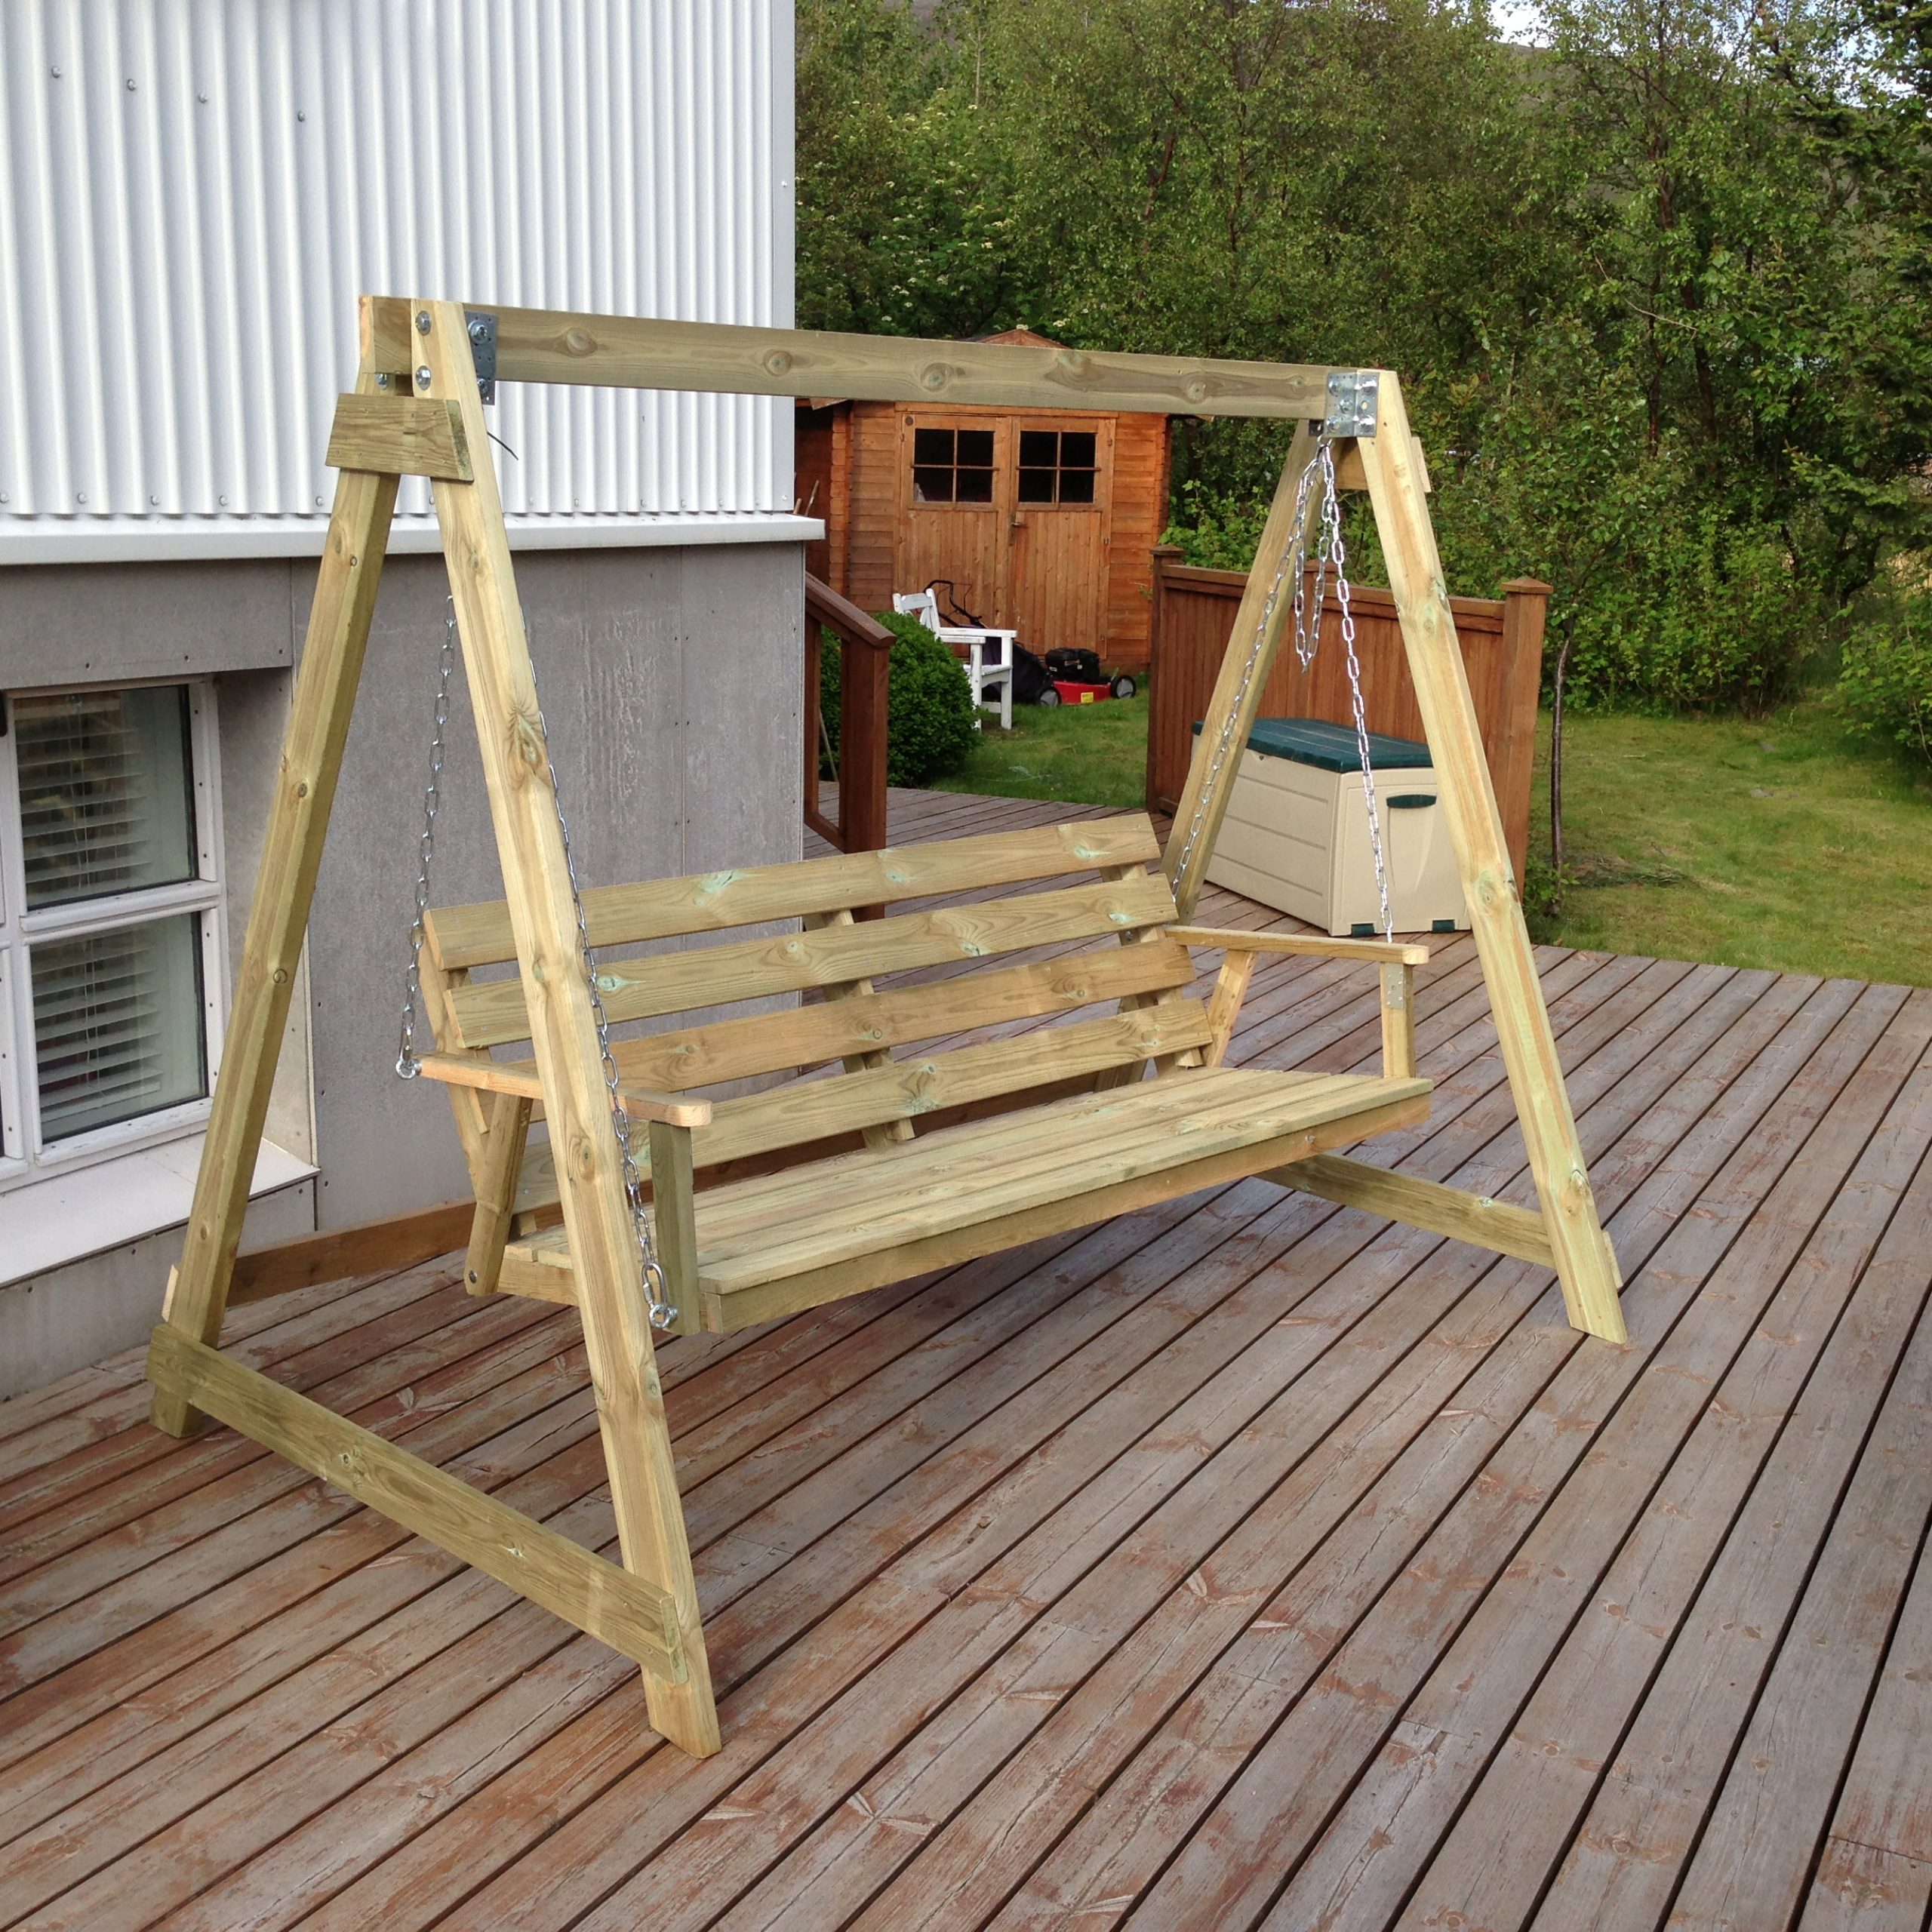 Bench Swing Plans Wooden Porch Swings Patio At Walmart With Pertaining To Patio Porch Swings With Stand (View 16 of 25)